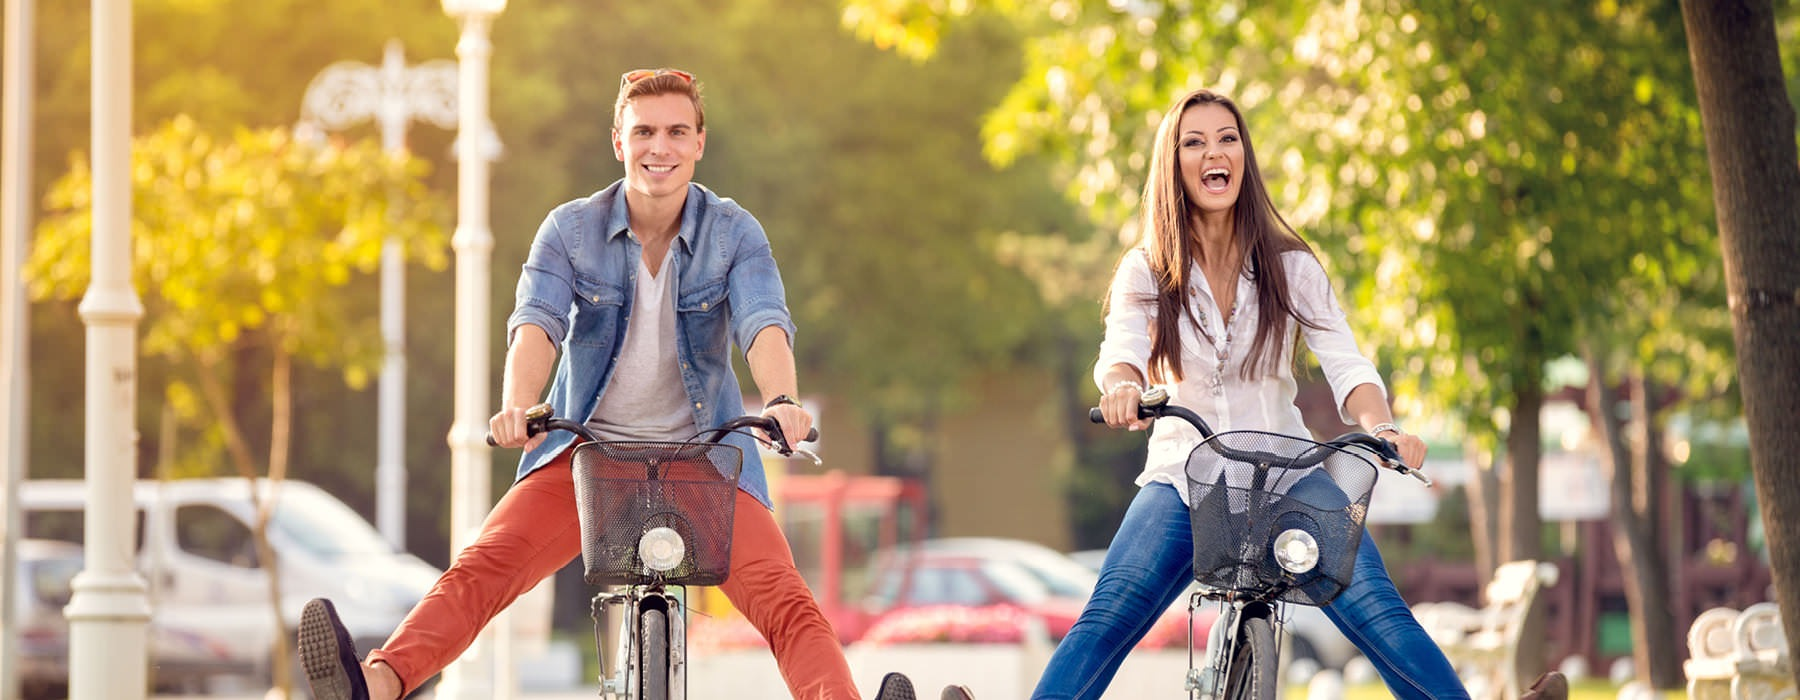 guy and girl being silly with legs outstretched on their bicycles as they ride through a neighborhood park